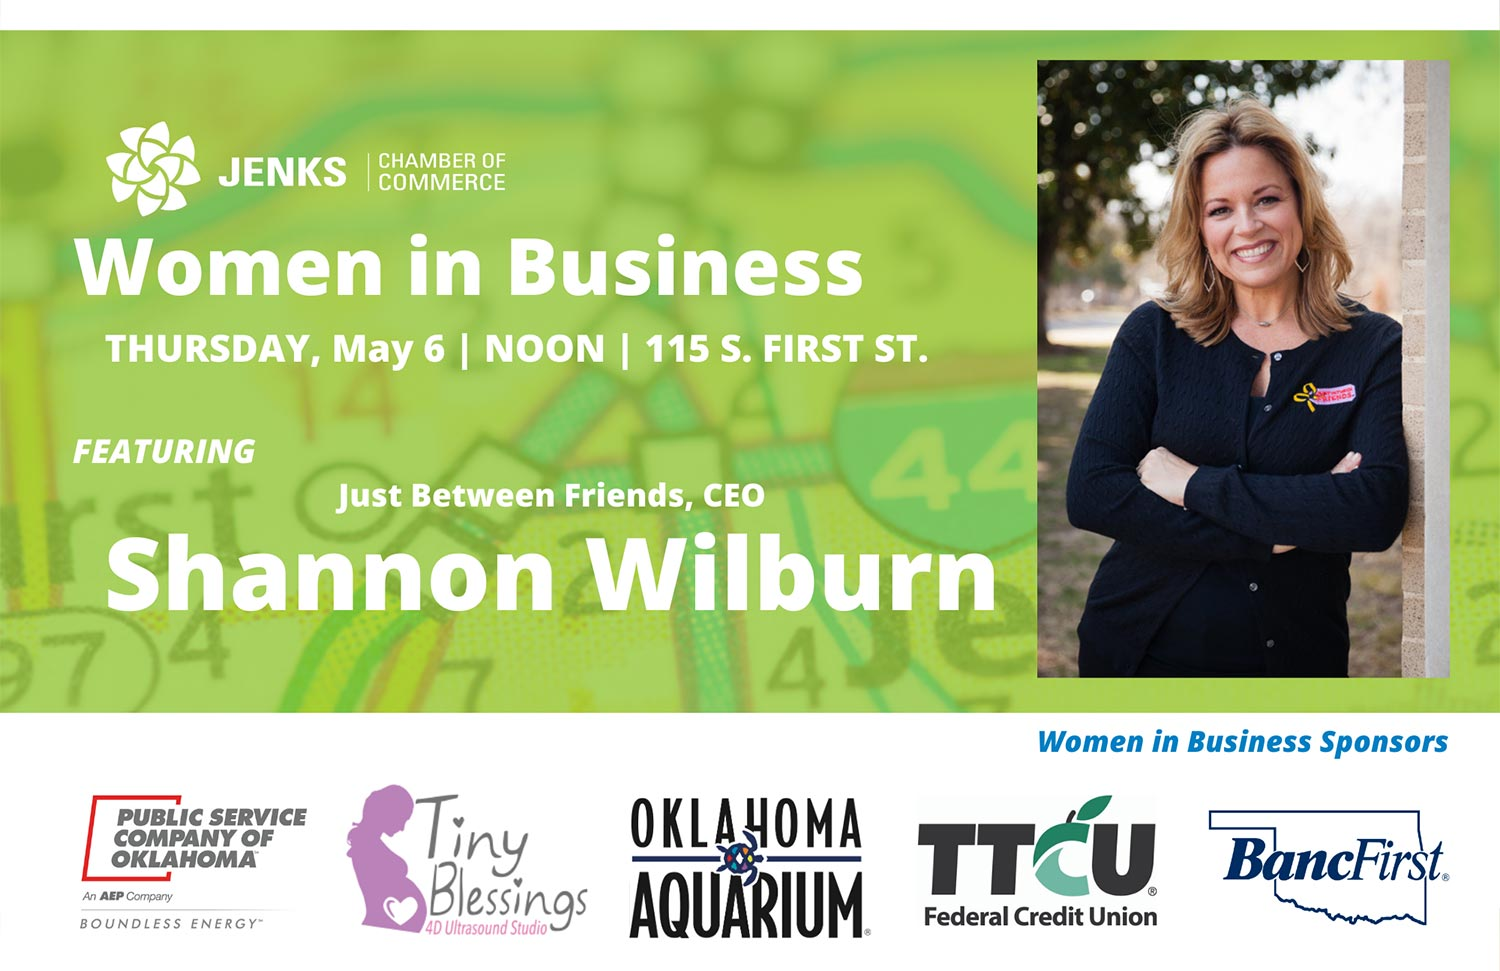 The Chamber Women in Business program will feature Shannon Wilburn as its guest speaker on May 6.